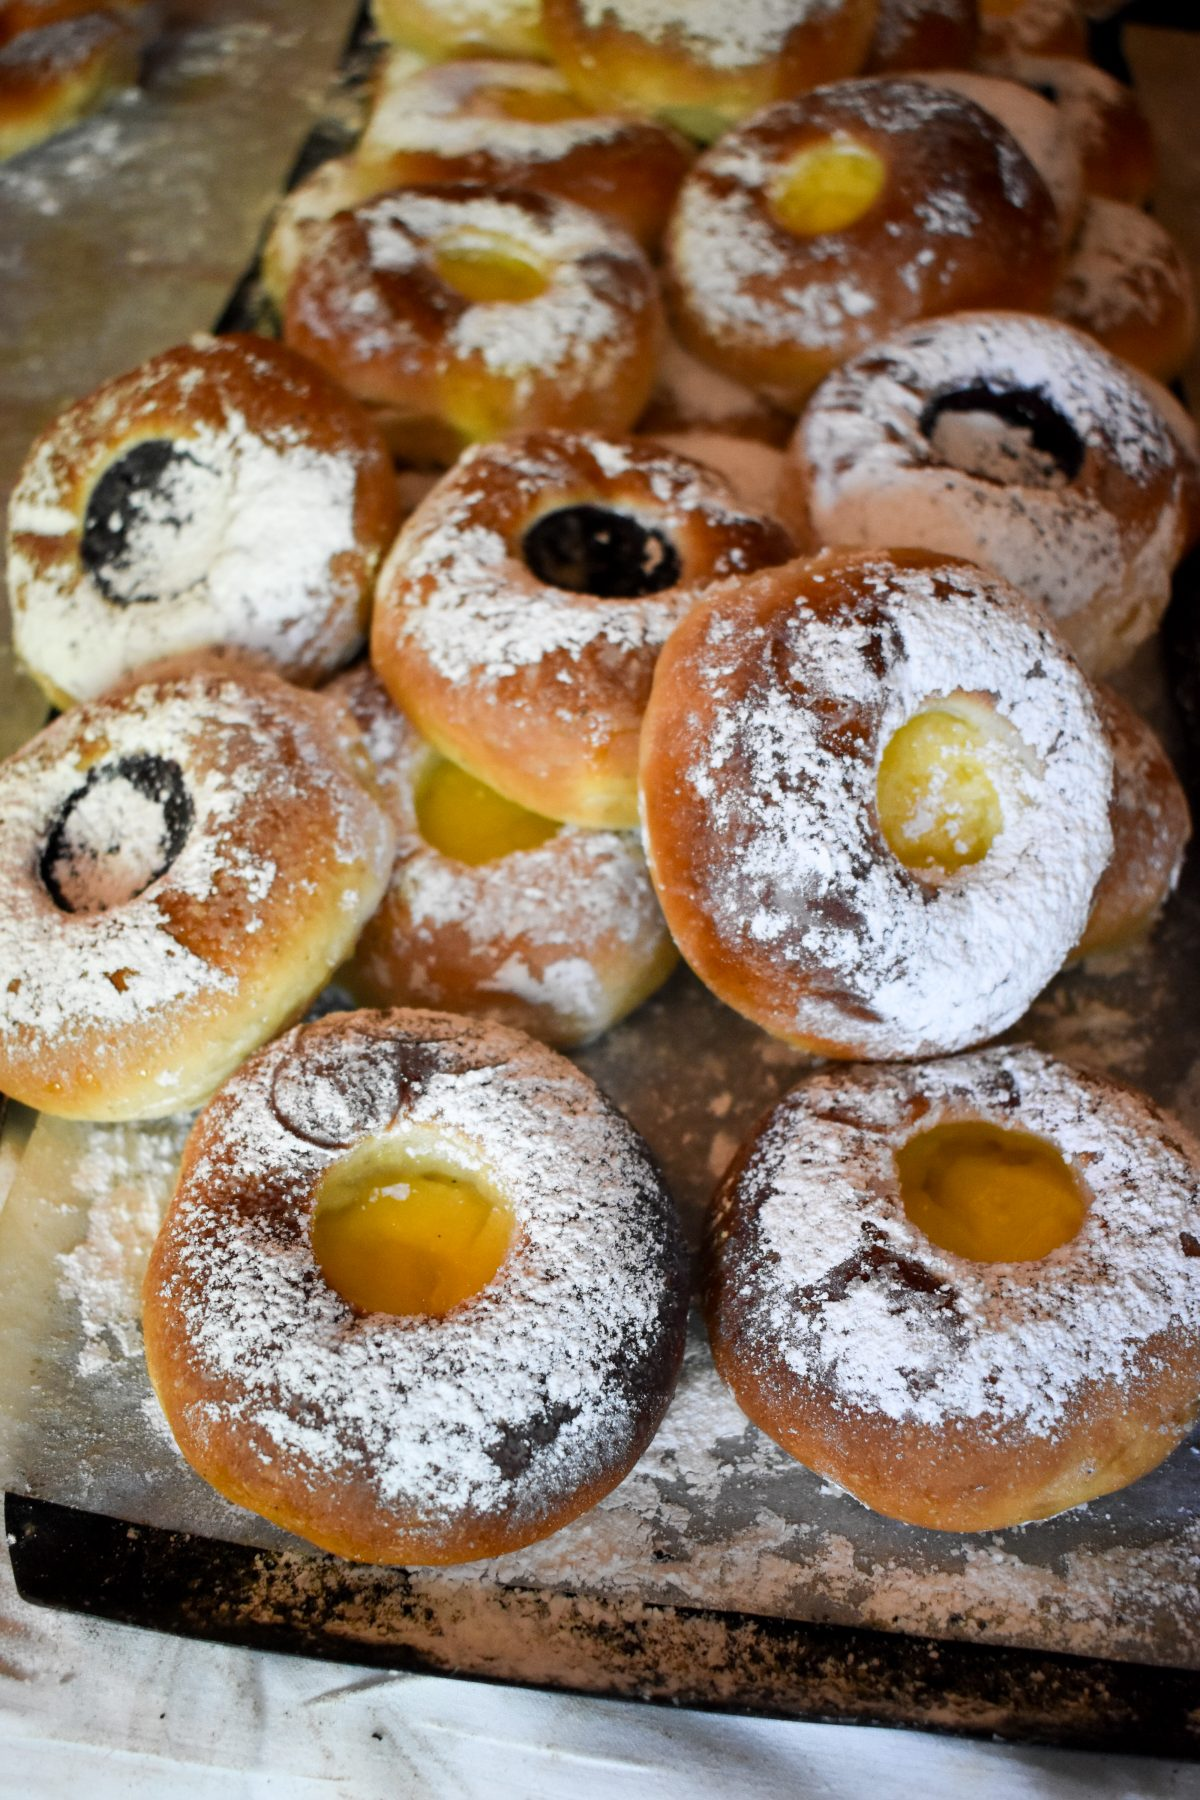 A selection of Swedish fruit filled pastries